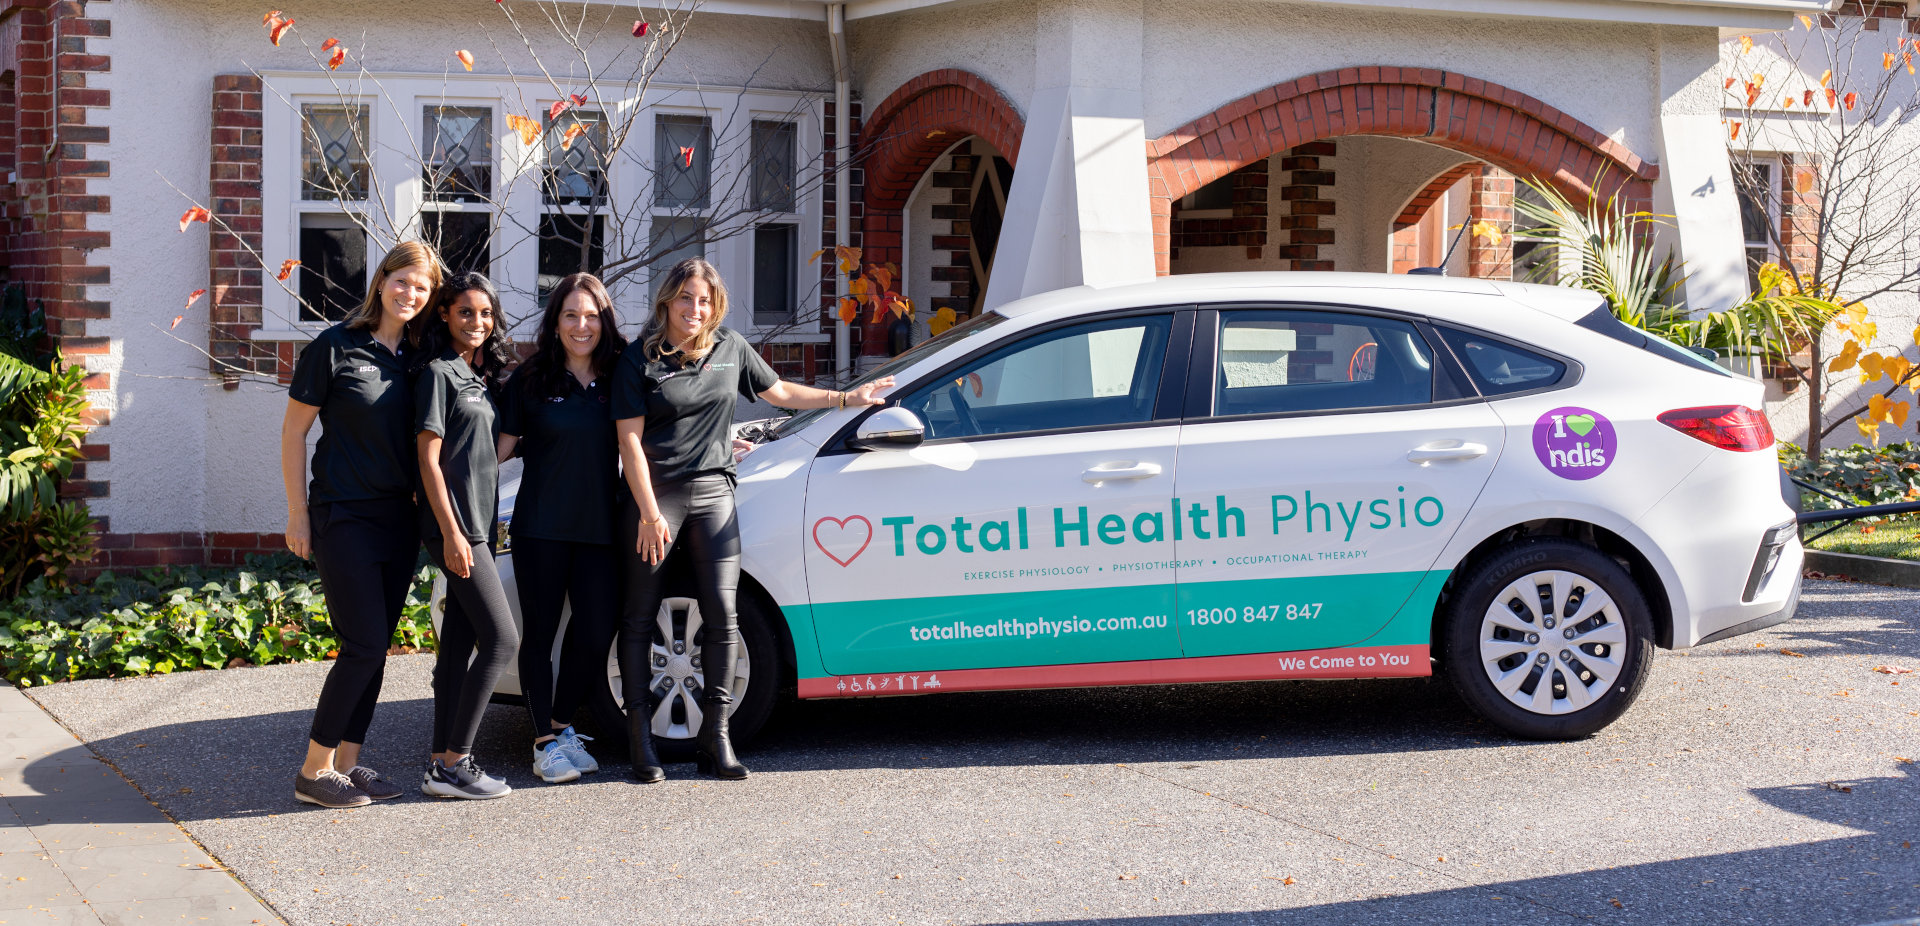 Total Health Physio